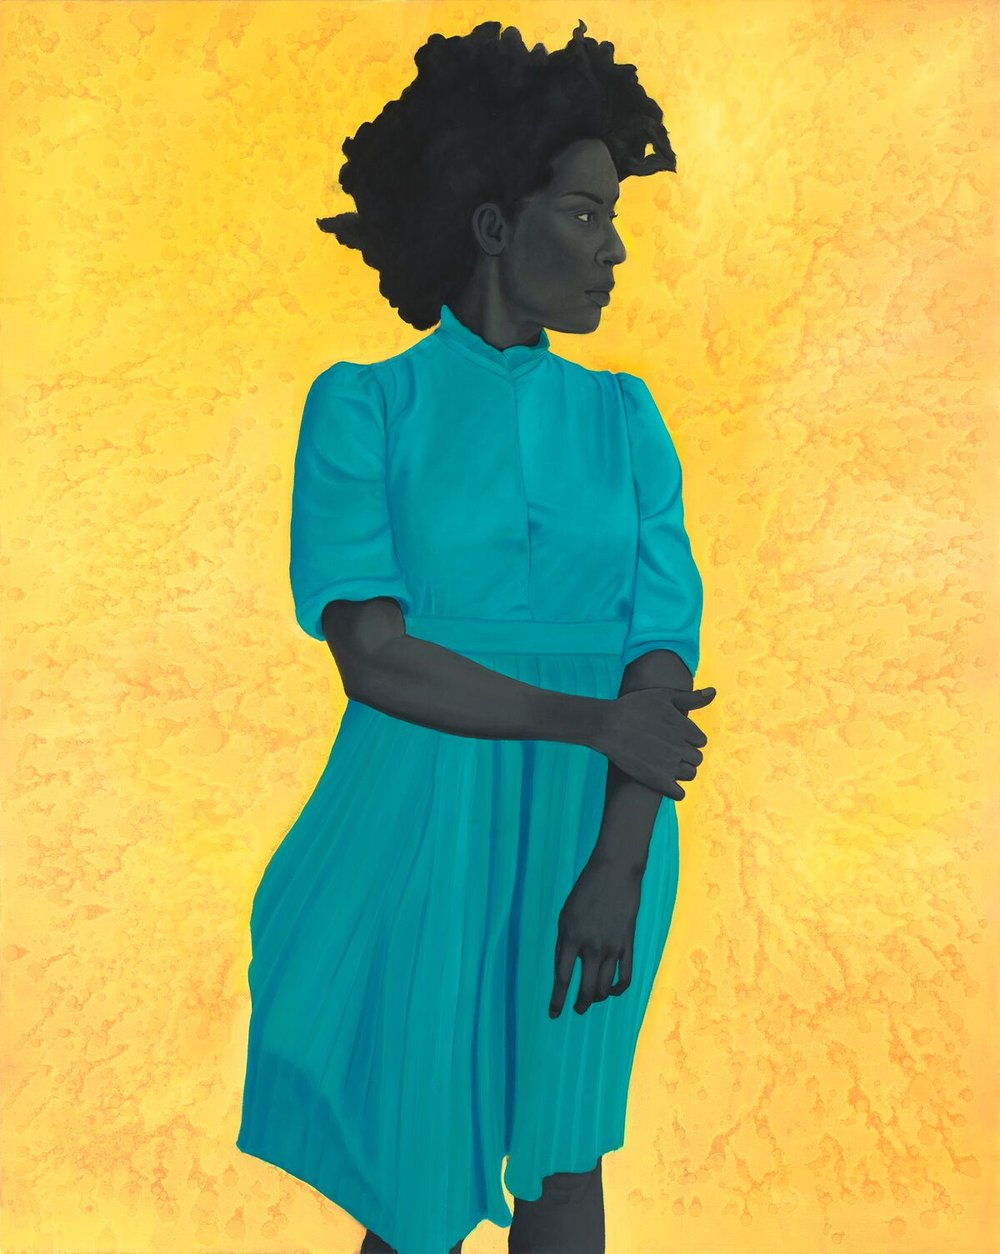 Amy Sherald, Saint Woman, 2015, oil on canvas. 54 x 43 in. (137.16 x 109.22 cm). Private collection, Hunts Point, WA. Courtesy the artist and Monique Meloche Gallery, Chicago.